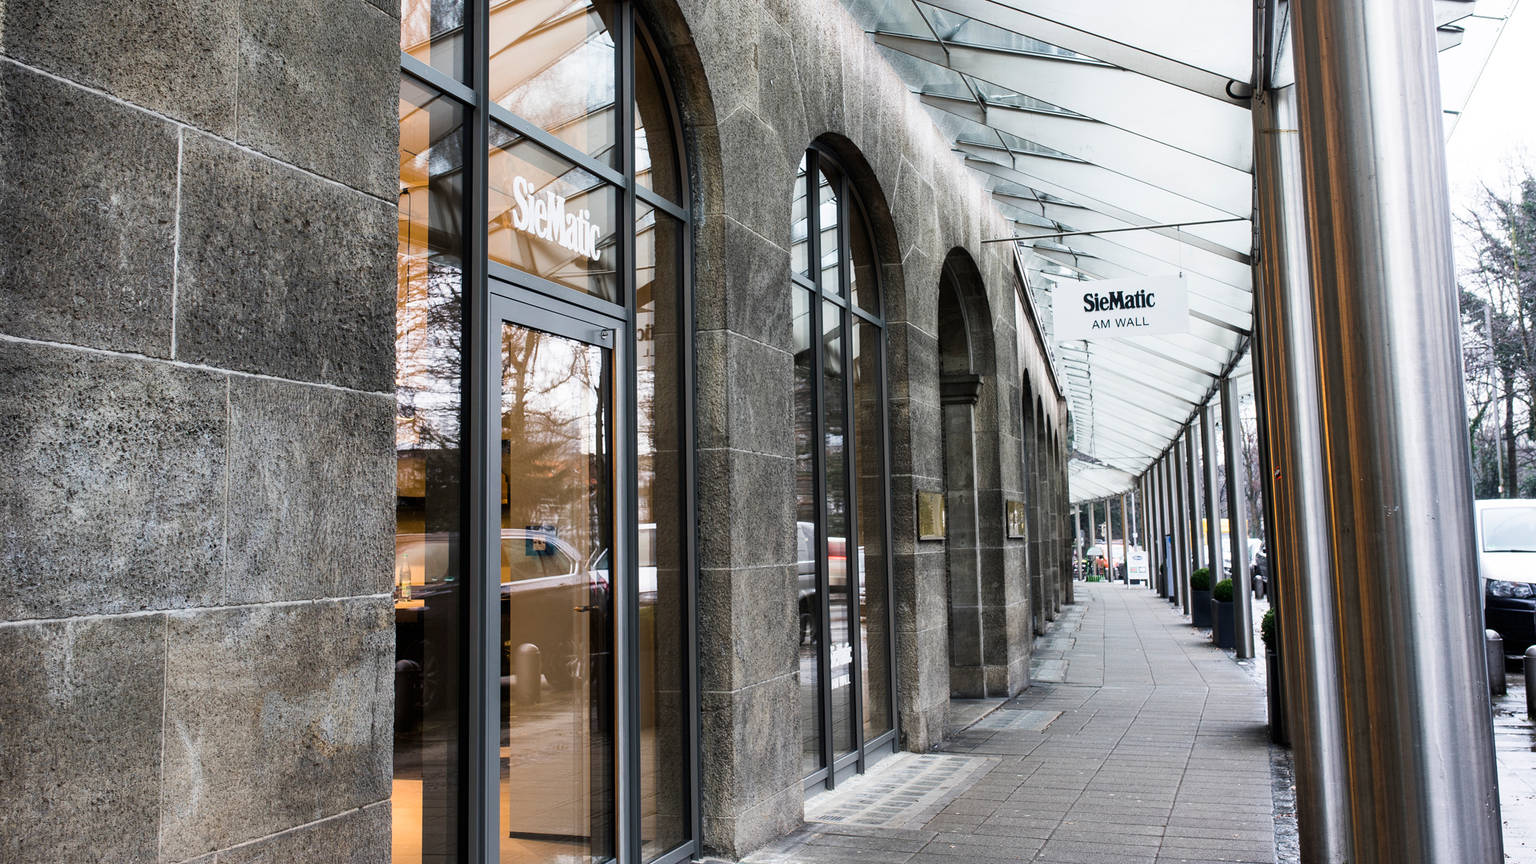 Stefan Ehrlicher Has Been With The SieMatic Brand In Bremerhaven For Six  Years, To Great Success. At Wall 175, He Has Found A Prime Central Location  That ...